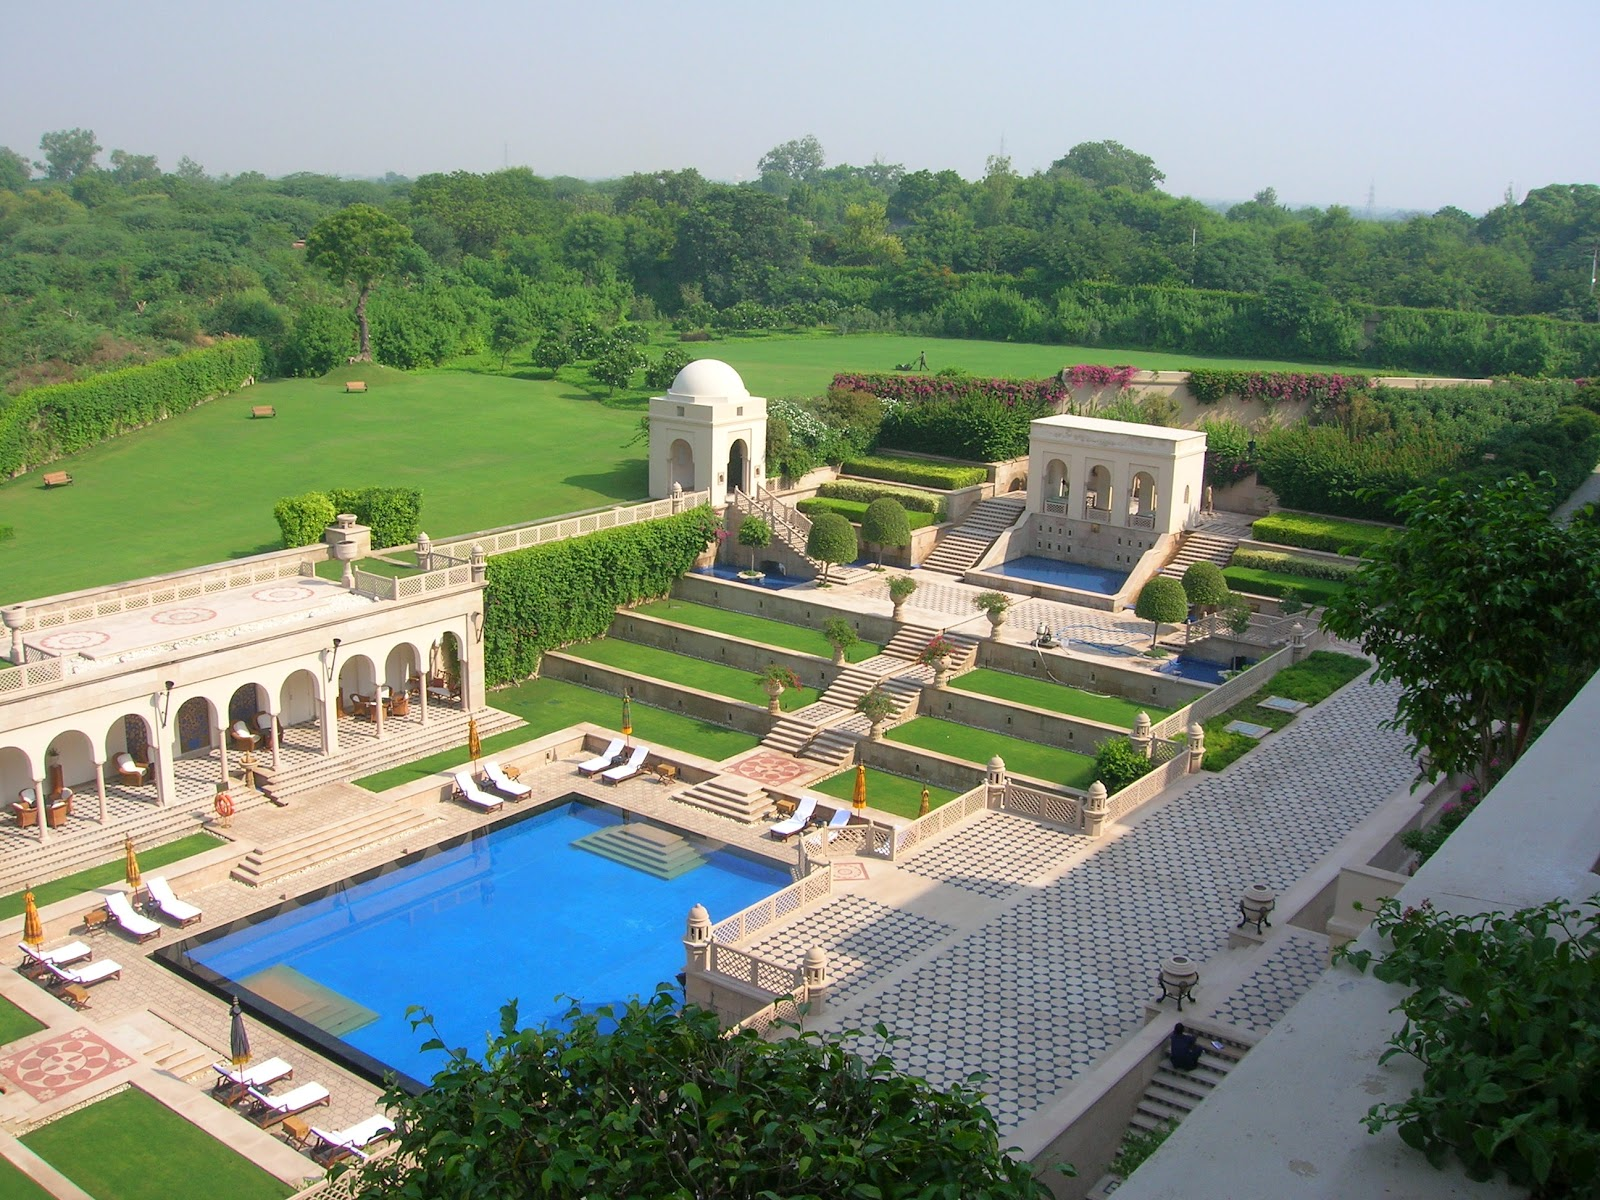 The Hotel We Stayed Was Oberoi Amarvilas